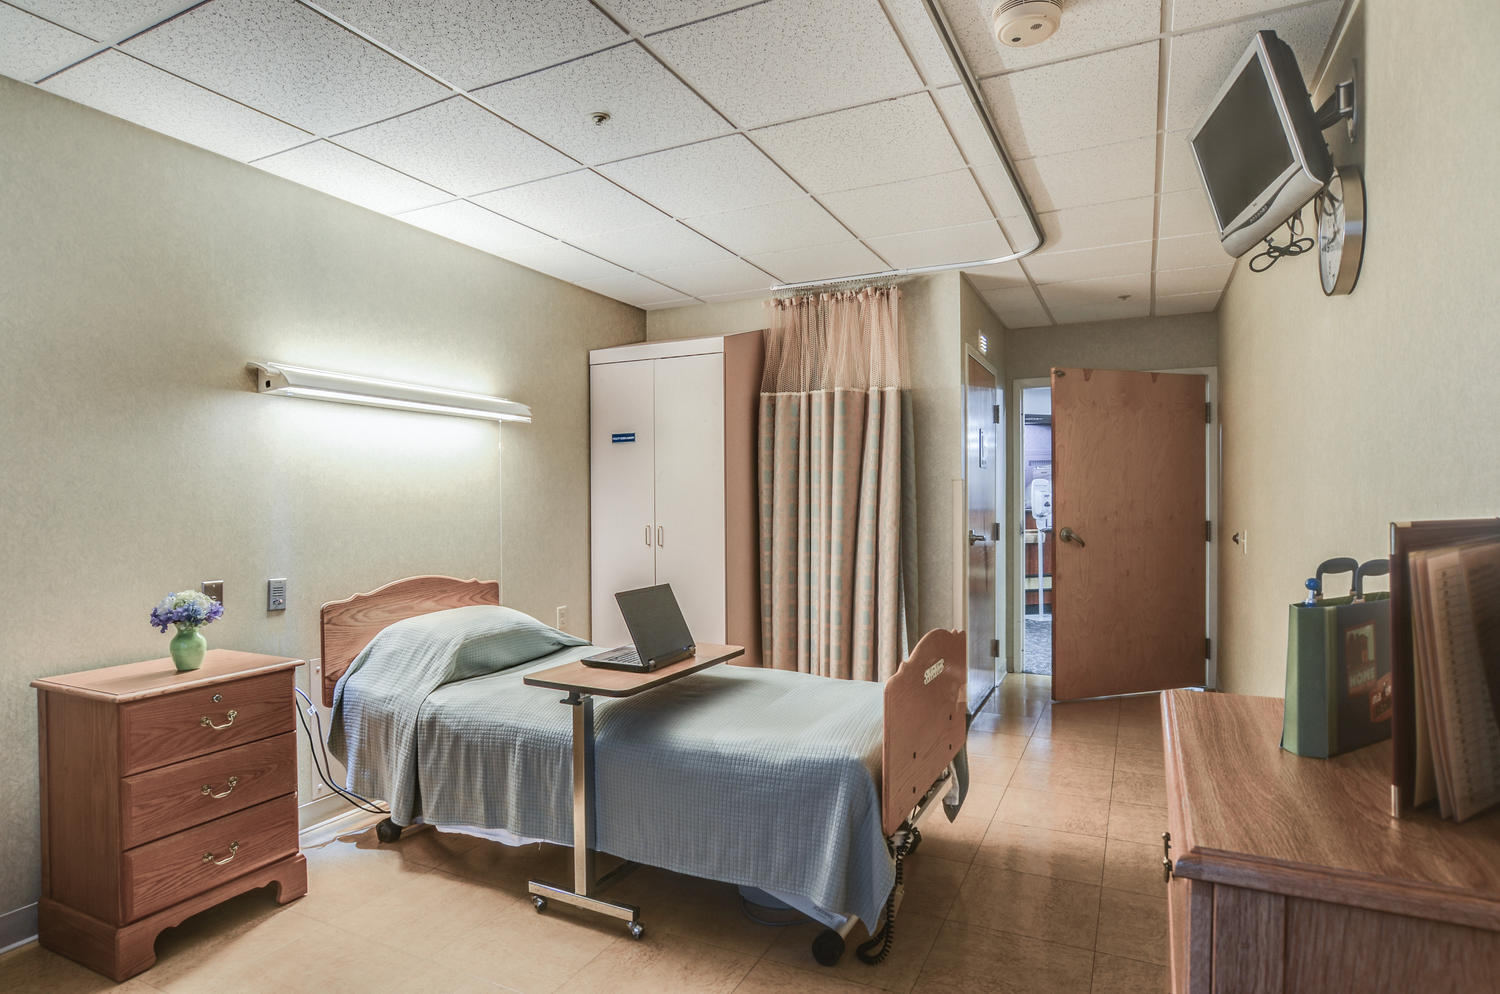 Manorcare Health Services Large 008 Private Patient Room 1500X994 72Dpi